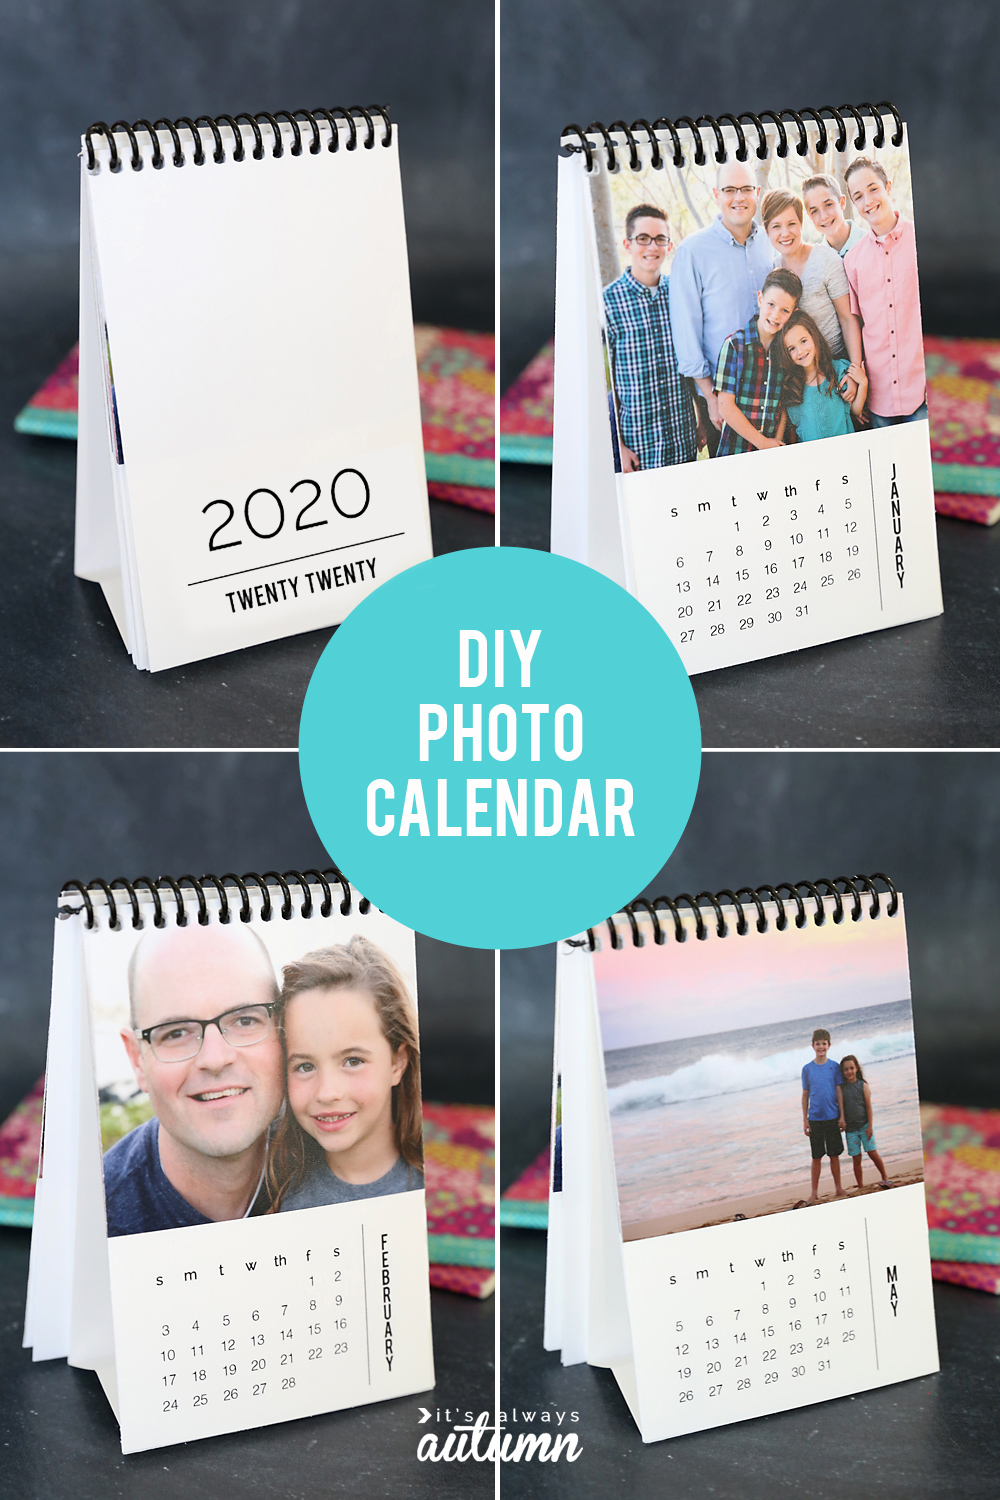 How to make a mini photo calendar for 2020 - great homemade gift idea!